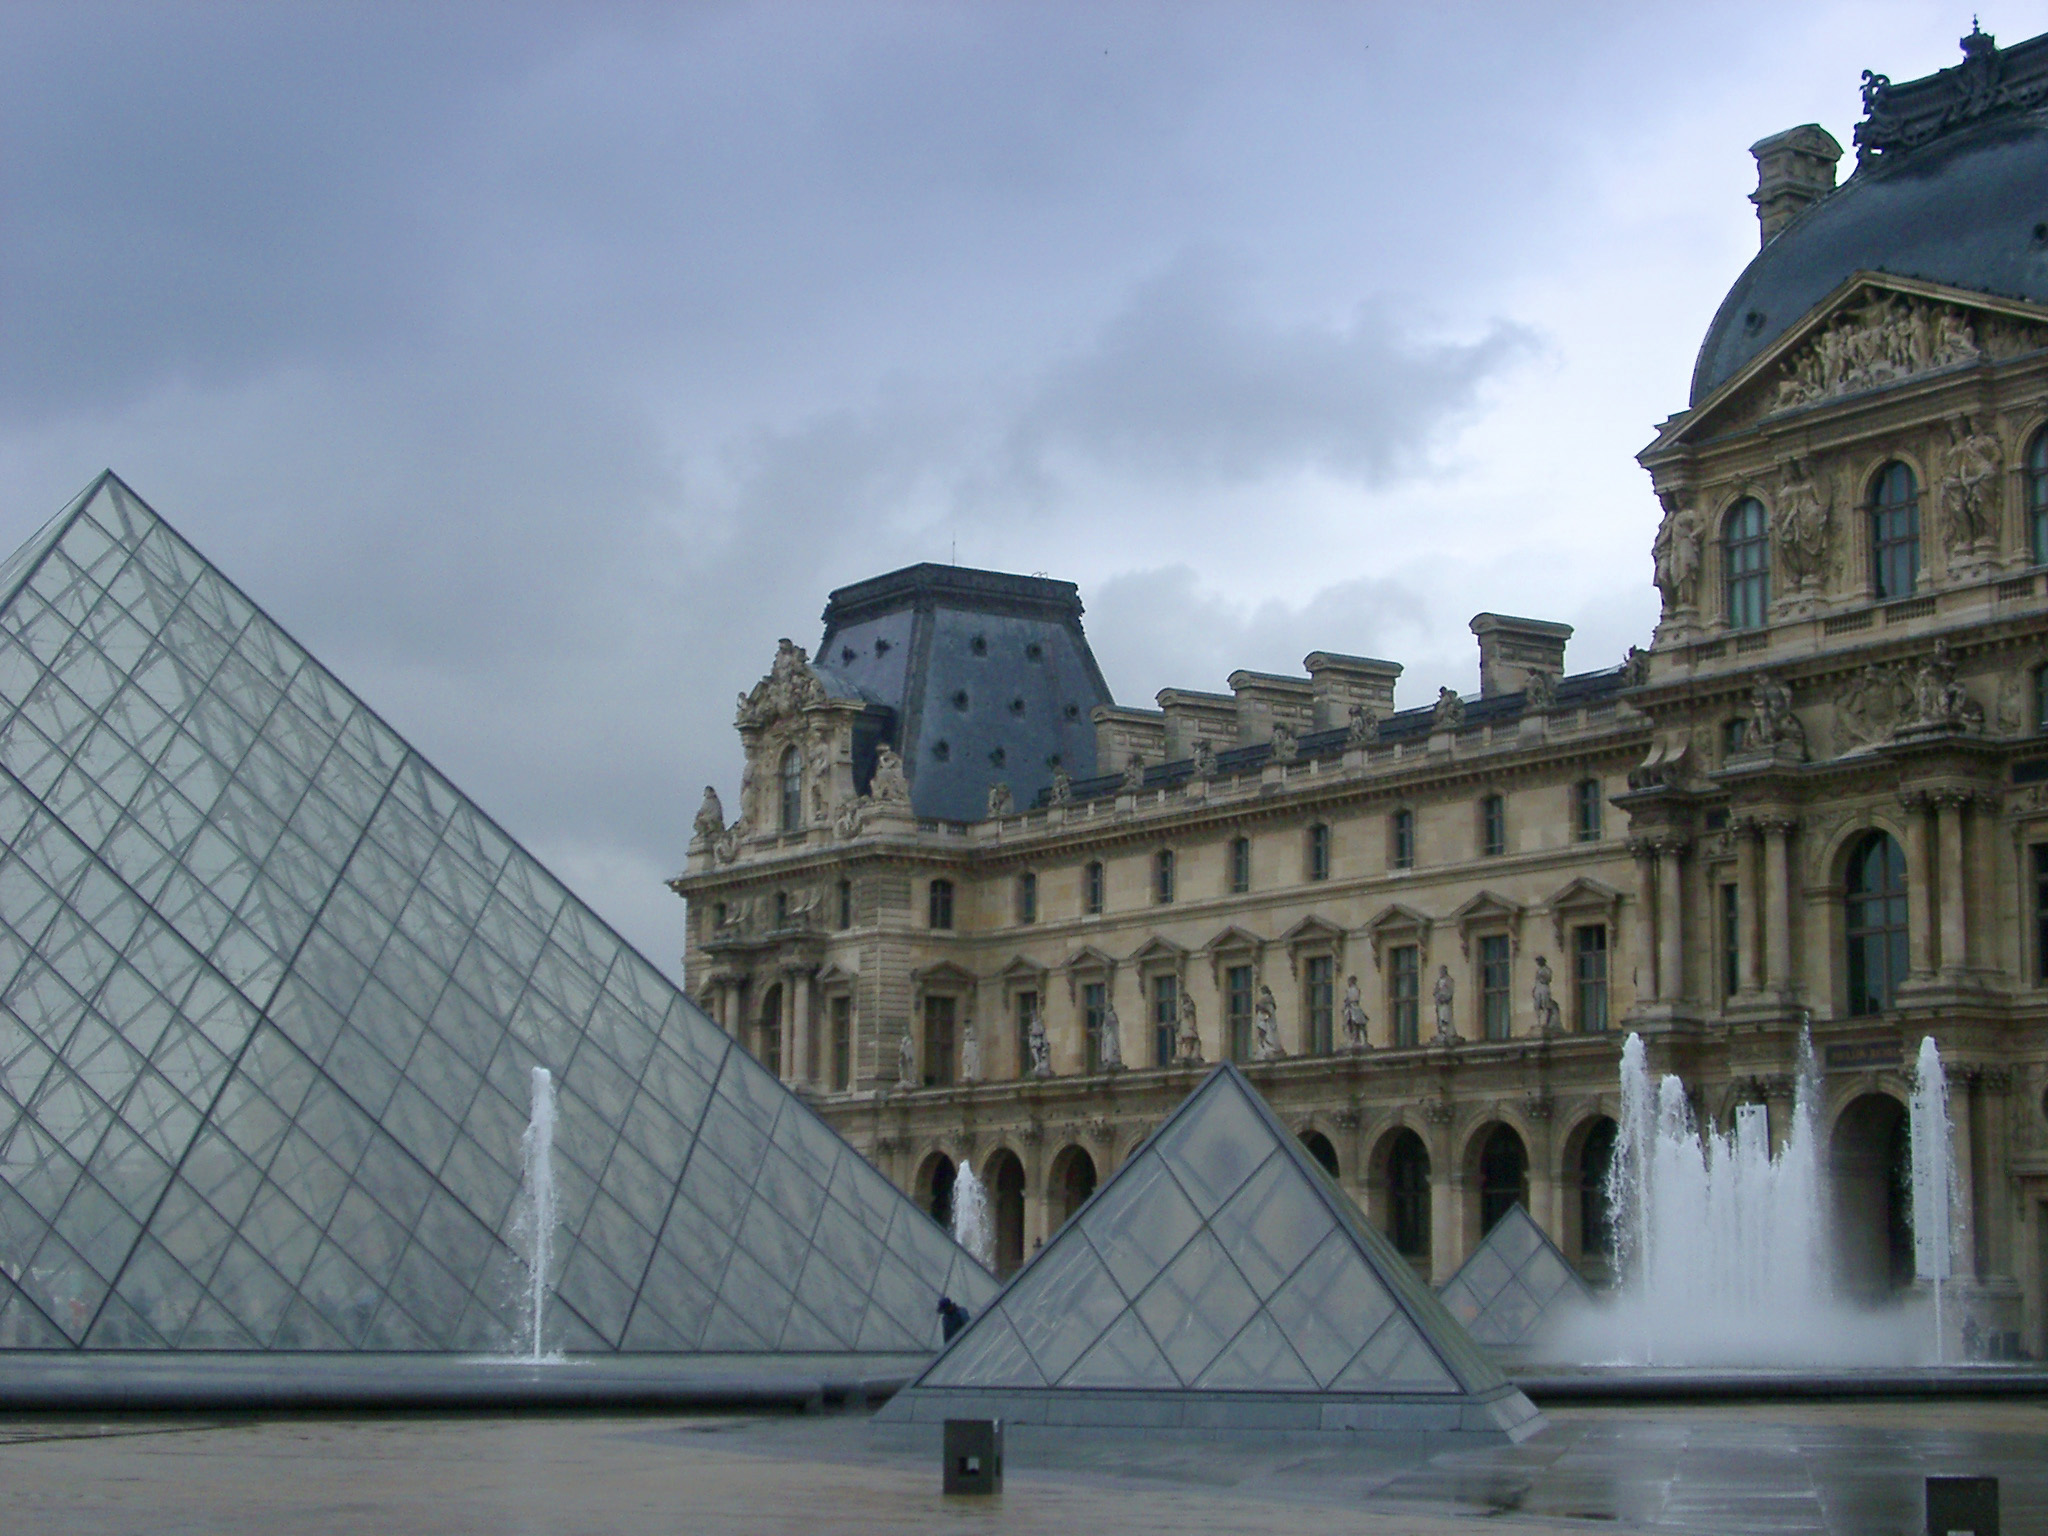 Courtyard of the Louvre in Paris showing the ornamental fountains and glass modern pyramids backed by the stone facade of the museum